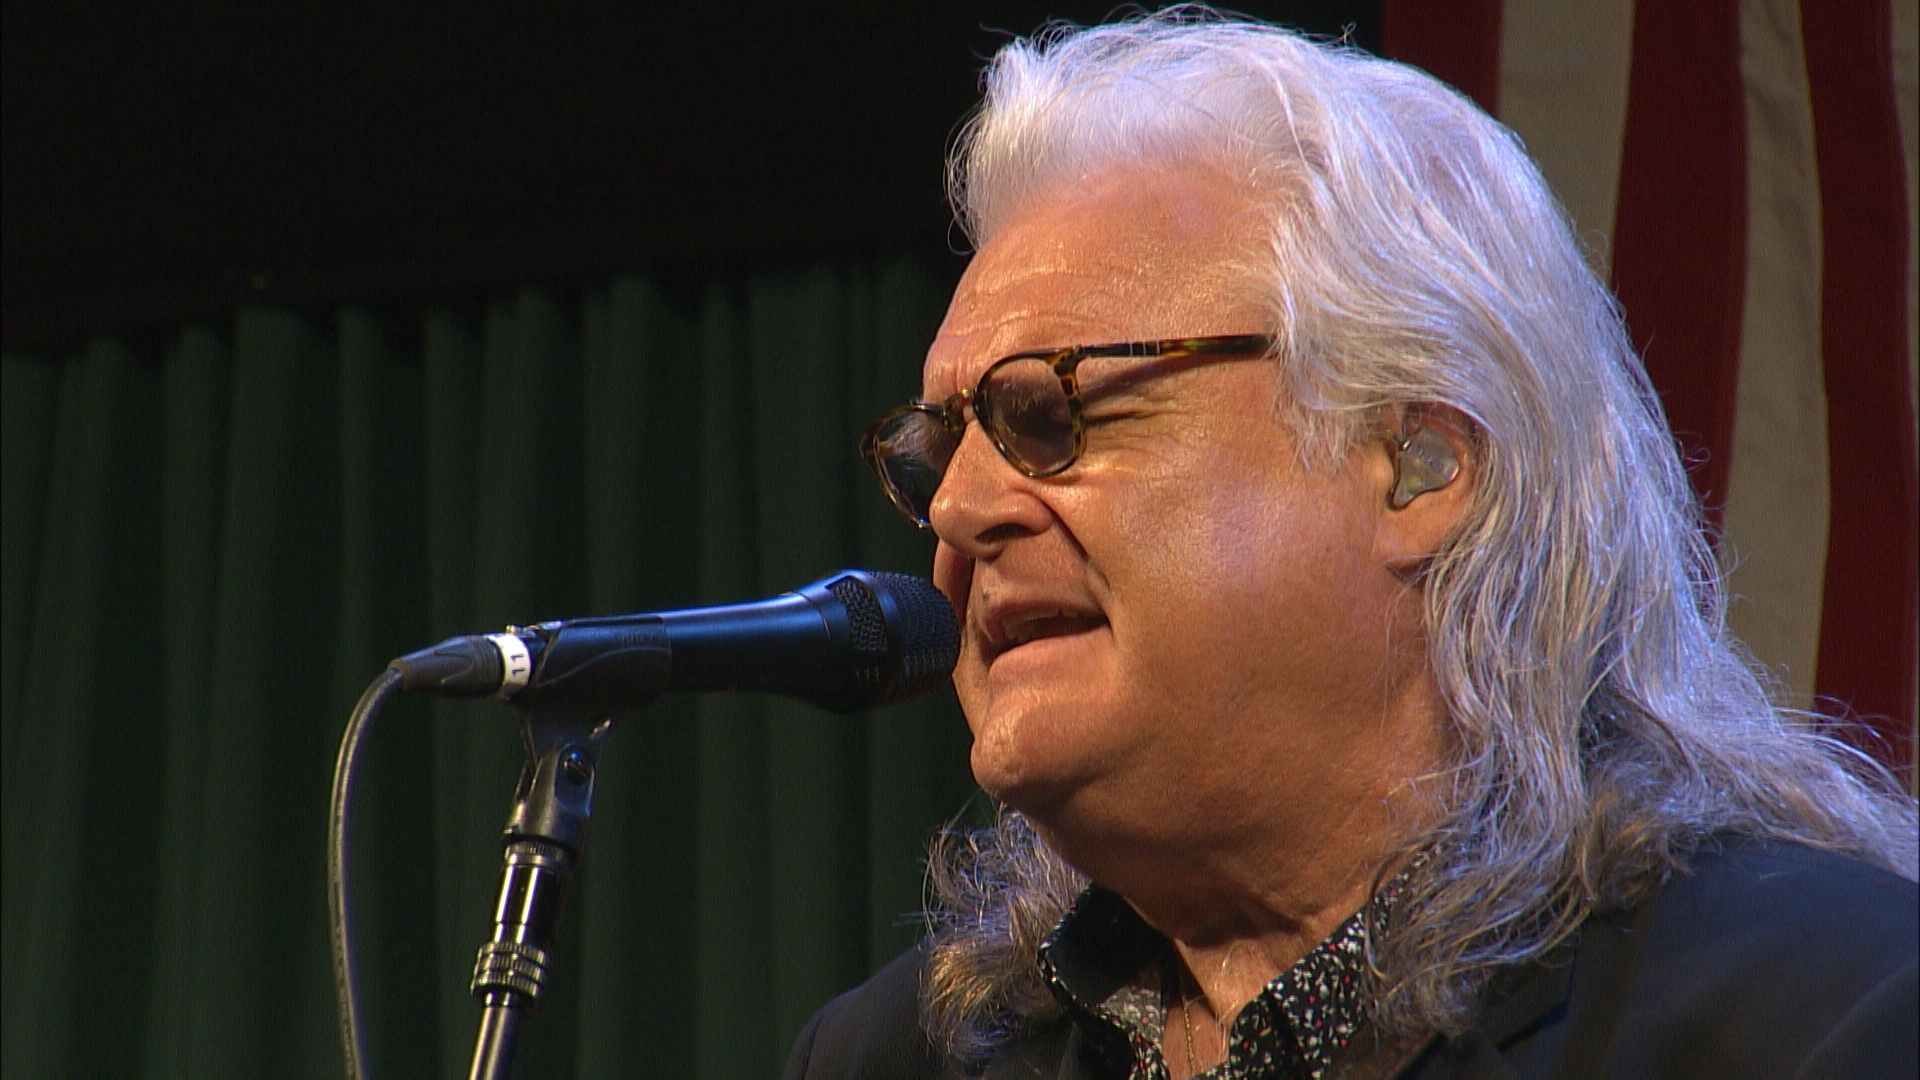 Ricky Skaggs performing on the main stage.